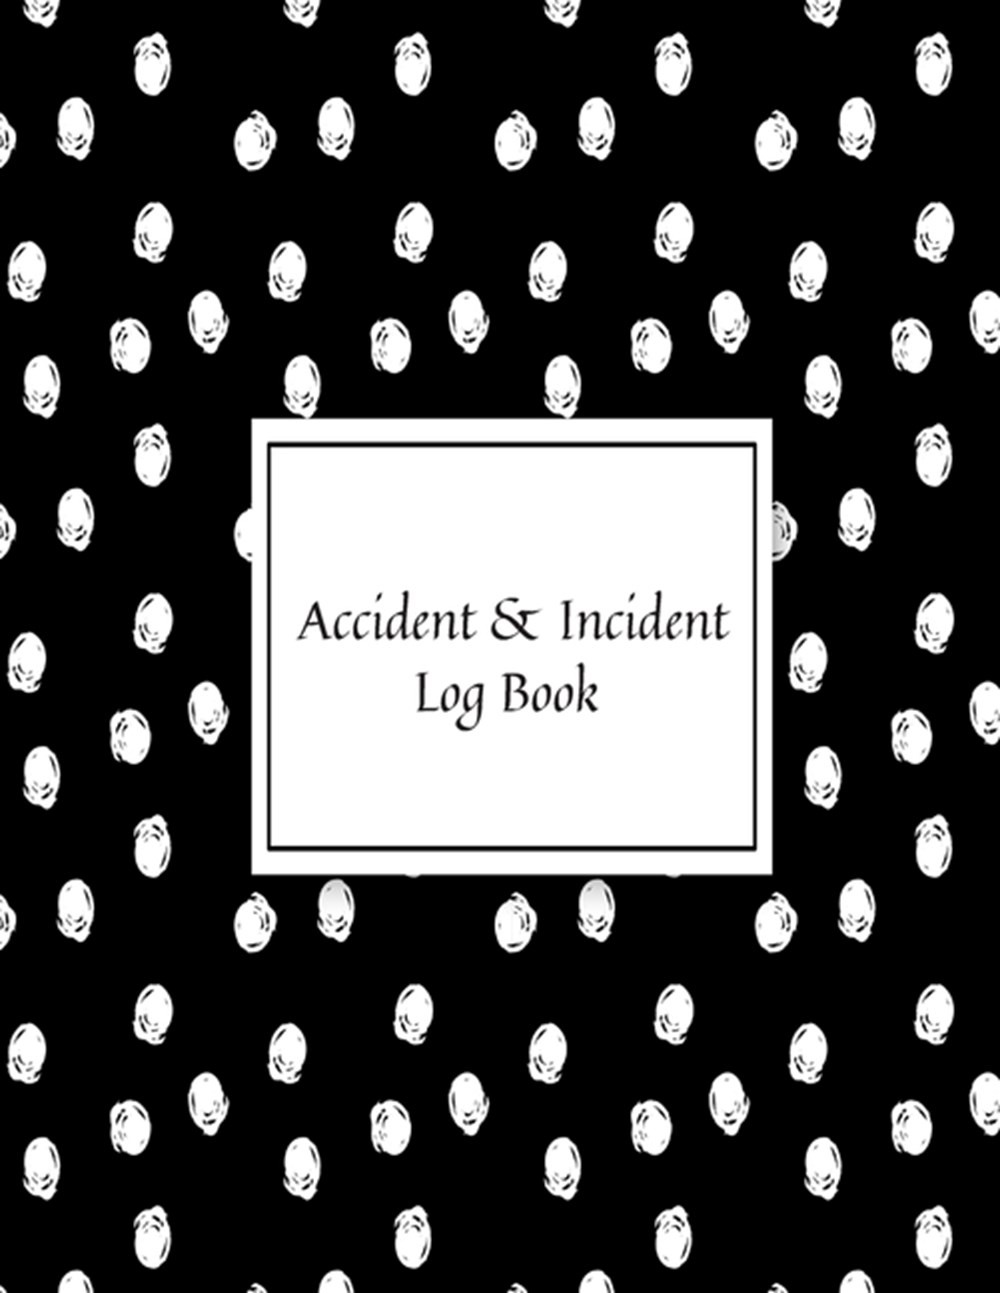 Accident & Incident Log Book Accident & Incident Record Log Book- Health & Safety Report Book for, B